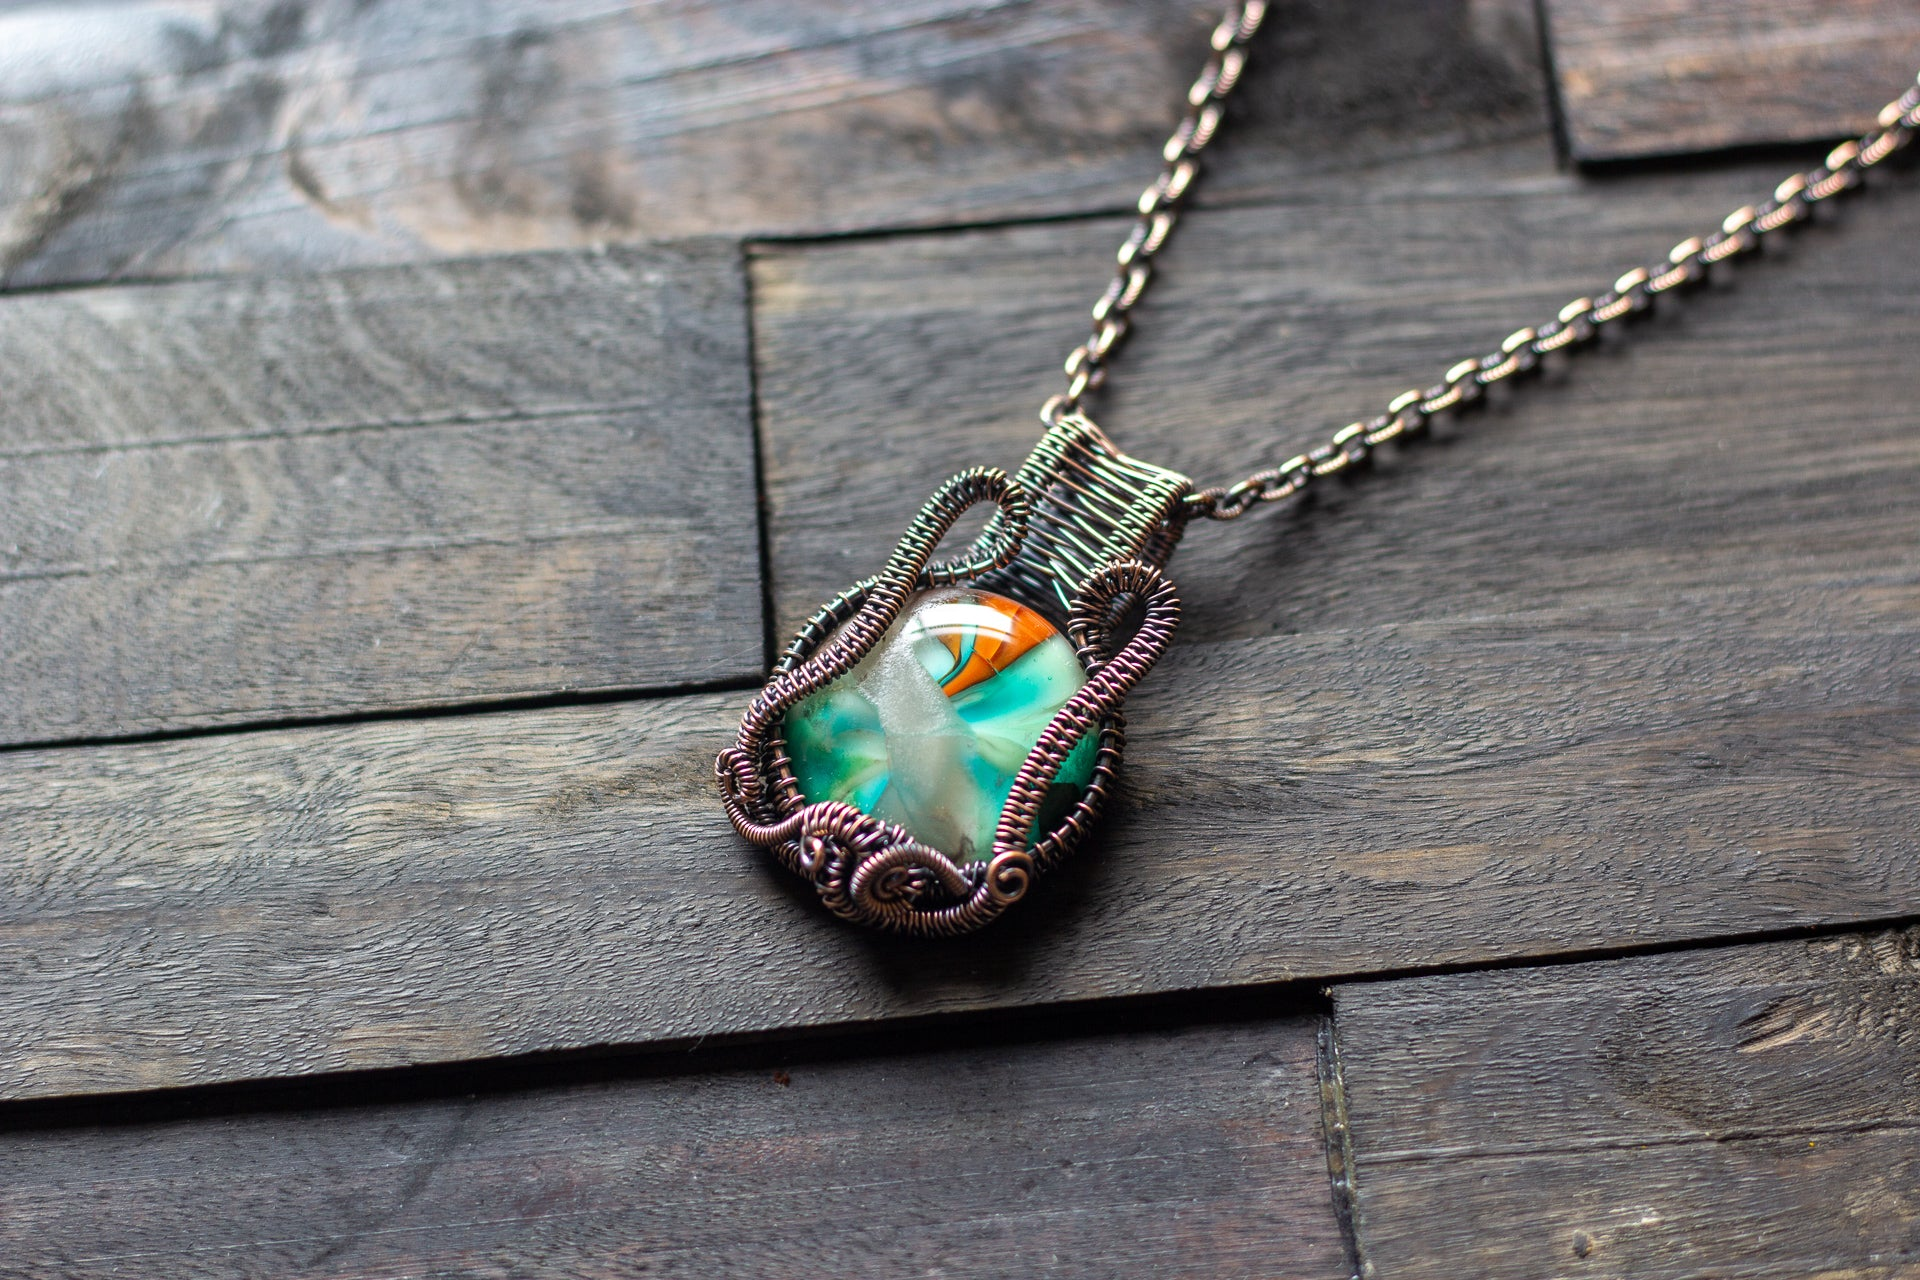 Copper Wire Wrapped Pendant with Blue-green and Orange Glass